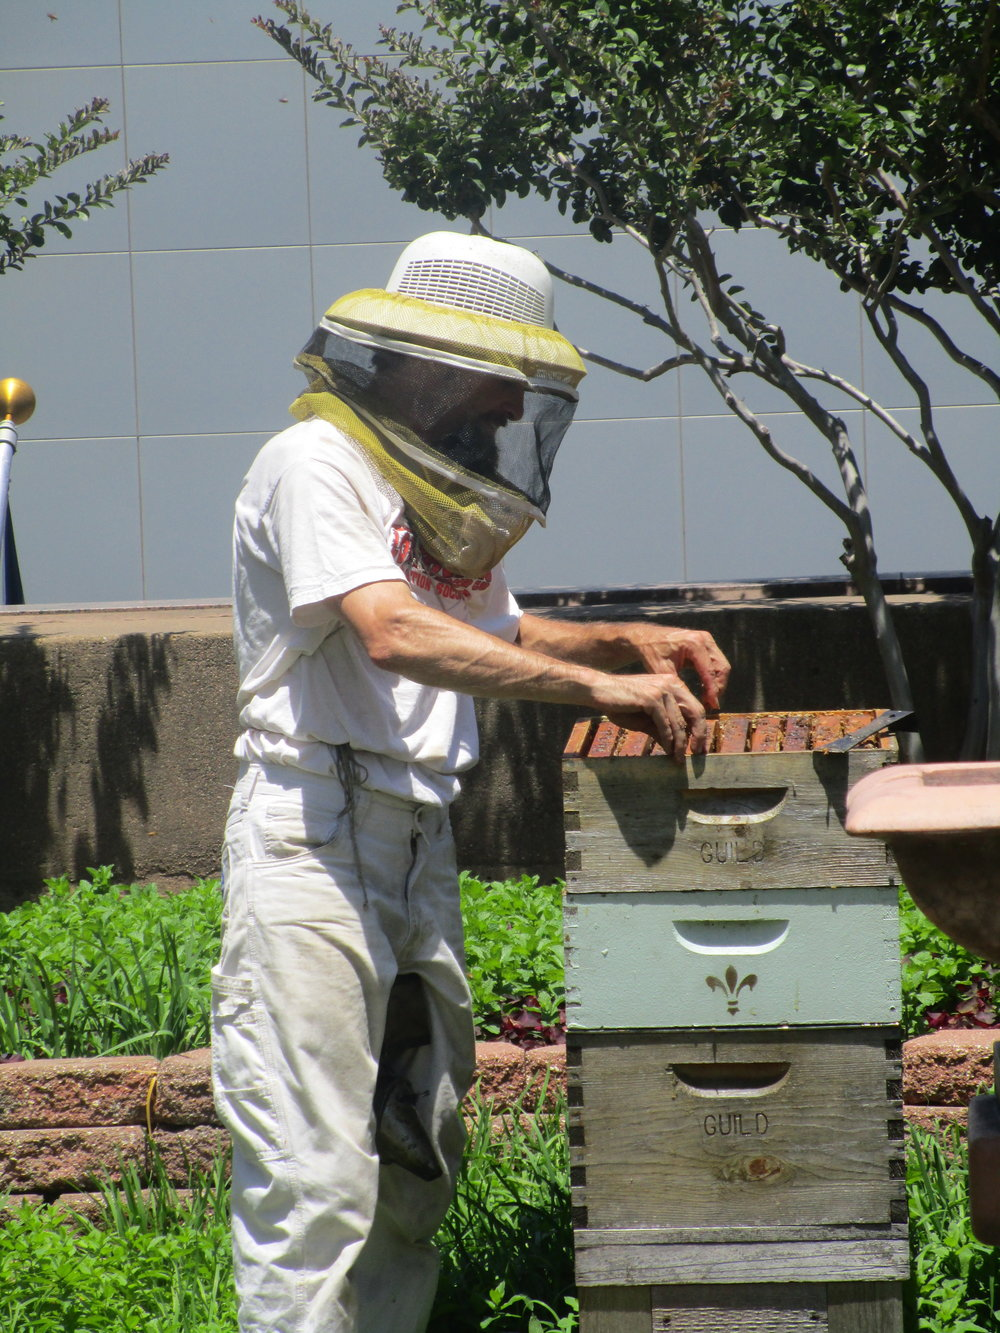 Beekeeper gathering honey at the Dallas Fairmont gardens